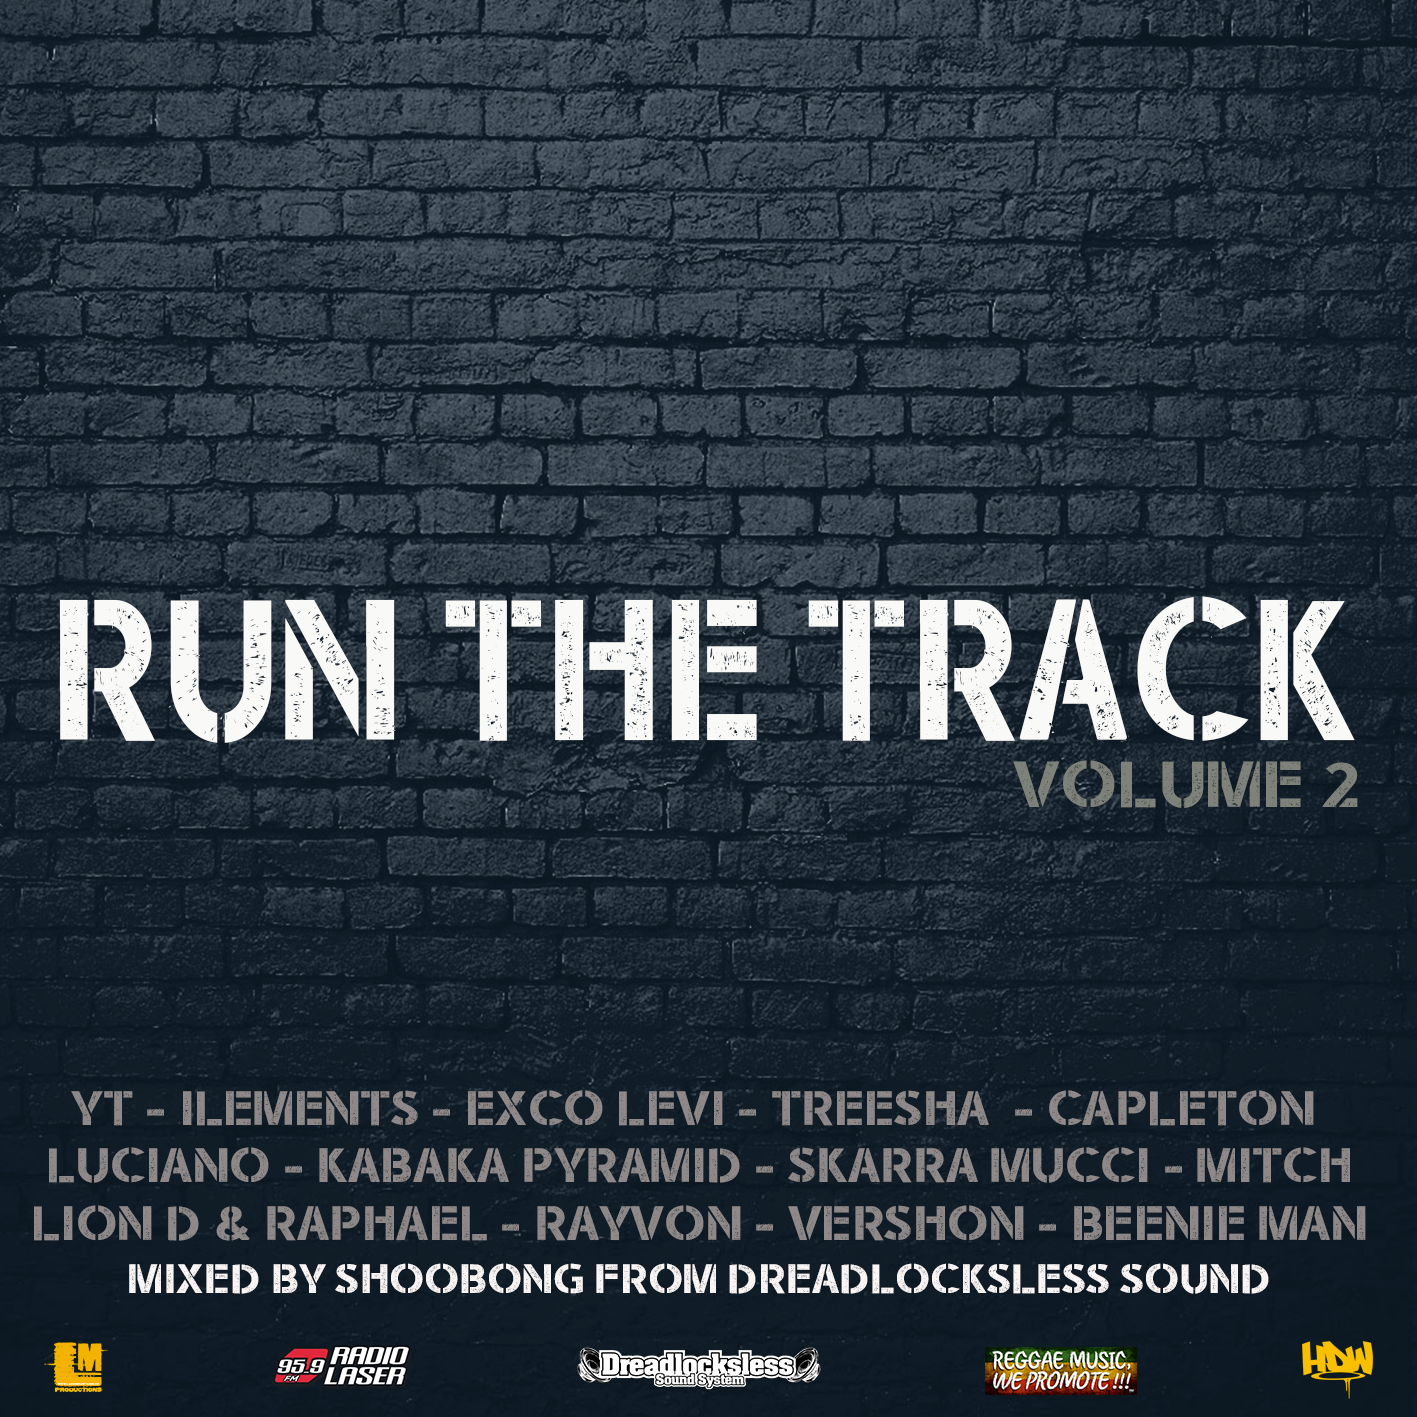 Dance All Together #196 Mixtape Run The Track Volume 2, 21 mai 2018